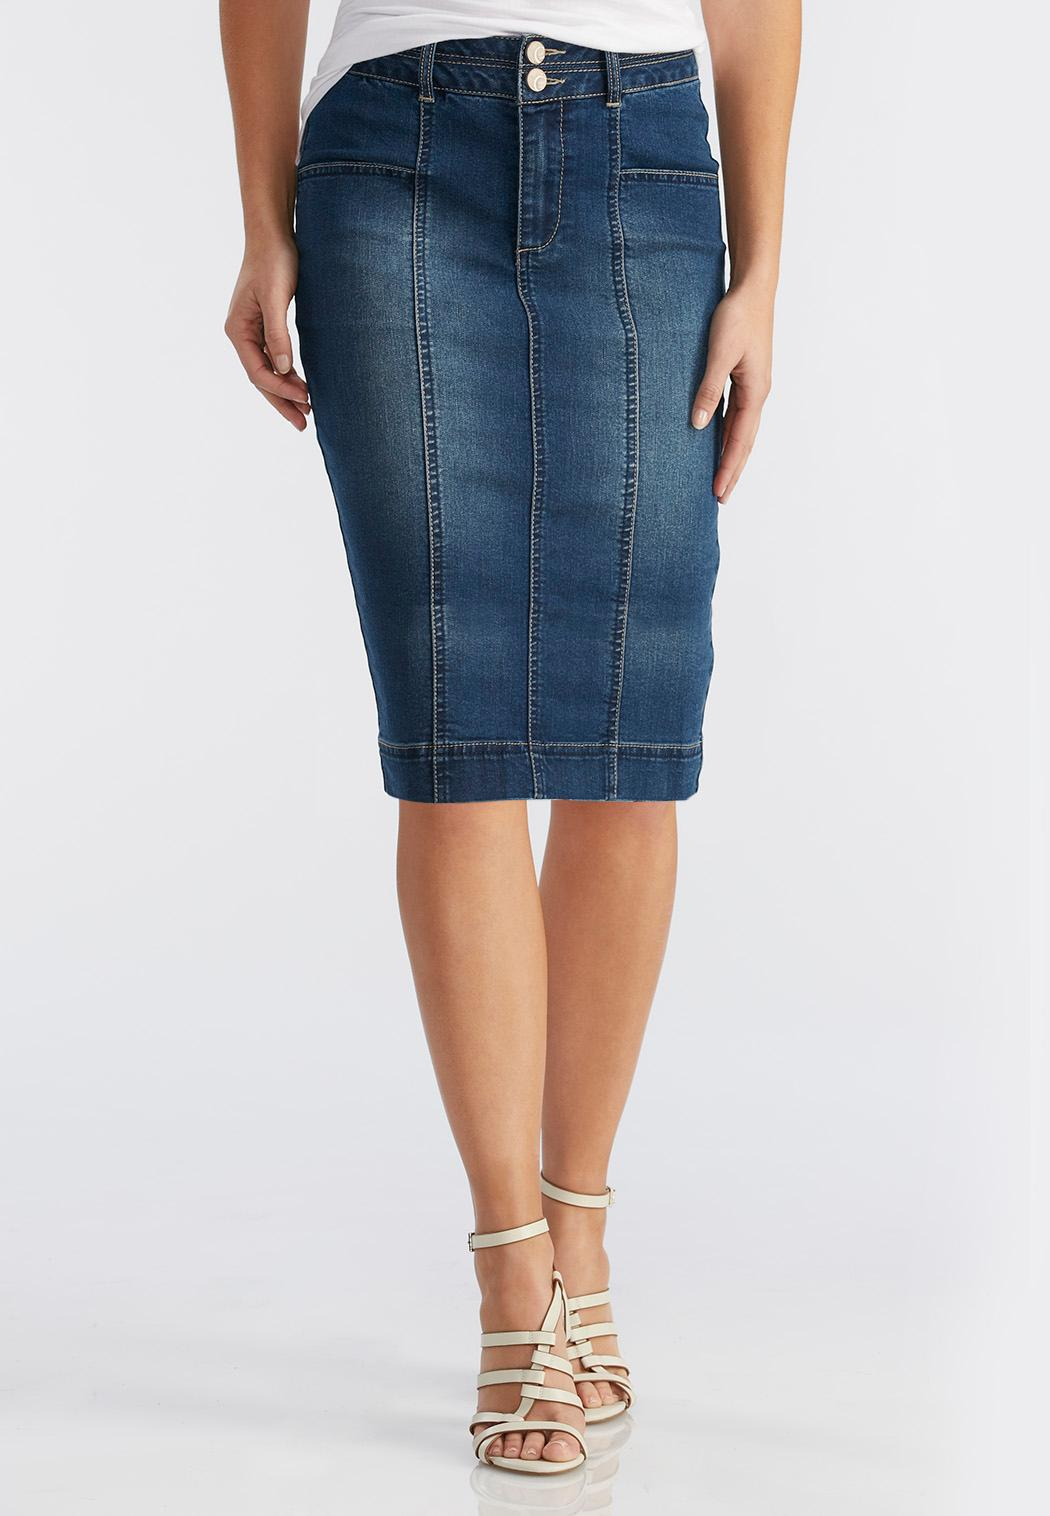 If you choose a high-waisted pencil skirt that's reminiscent of the s, a stylish.